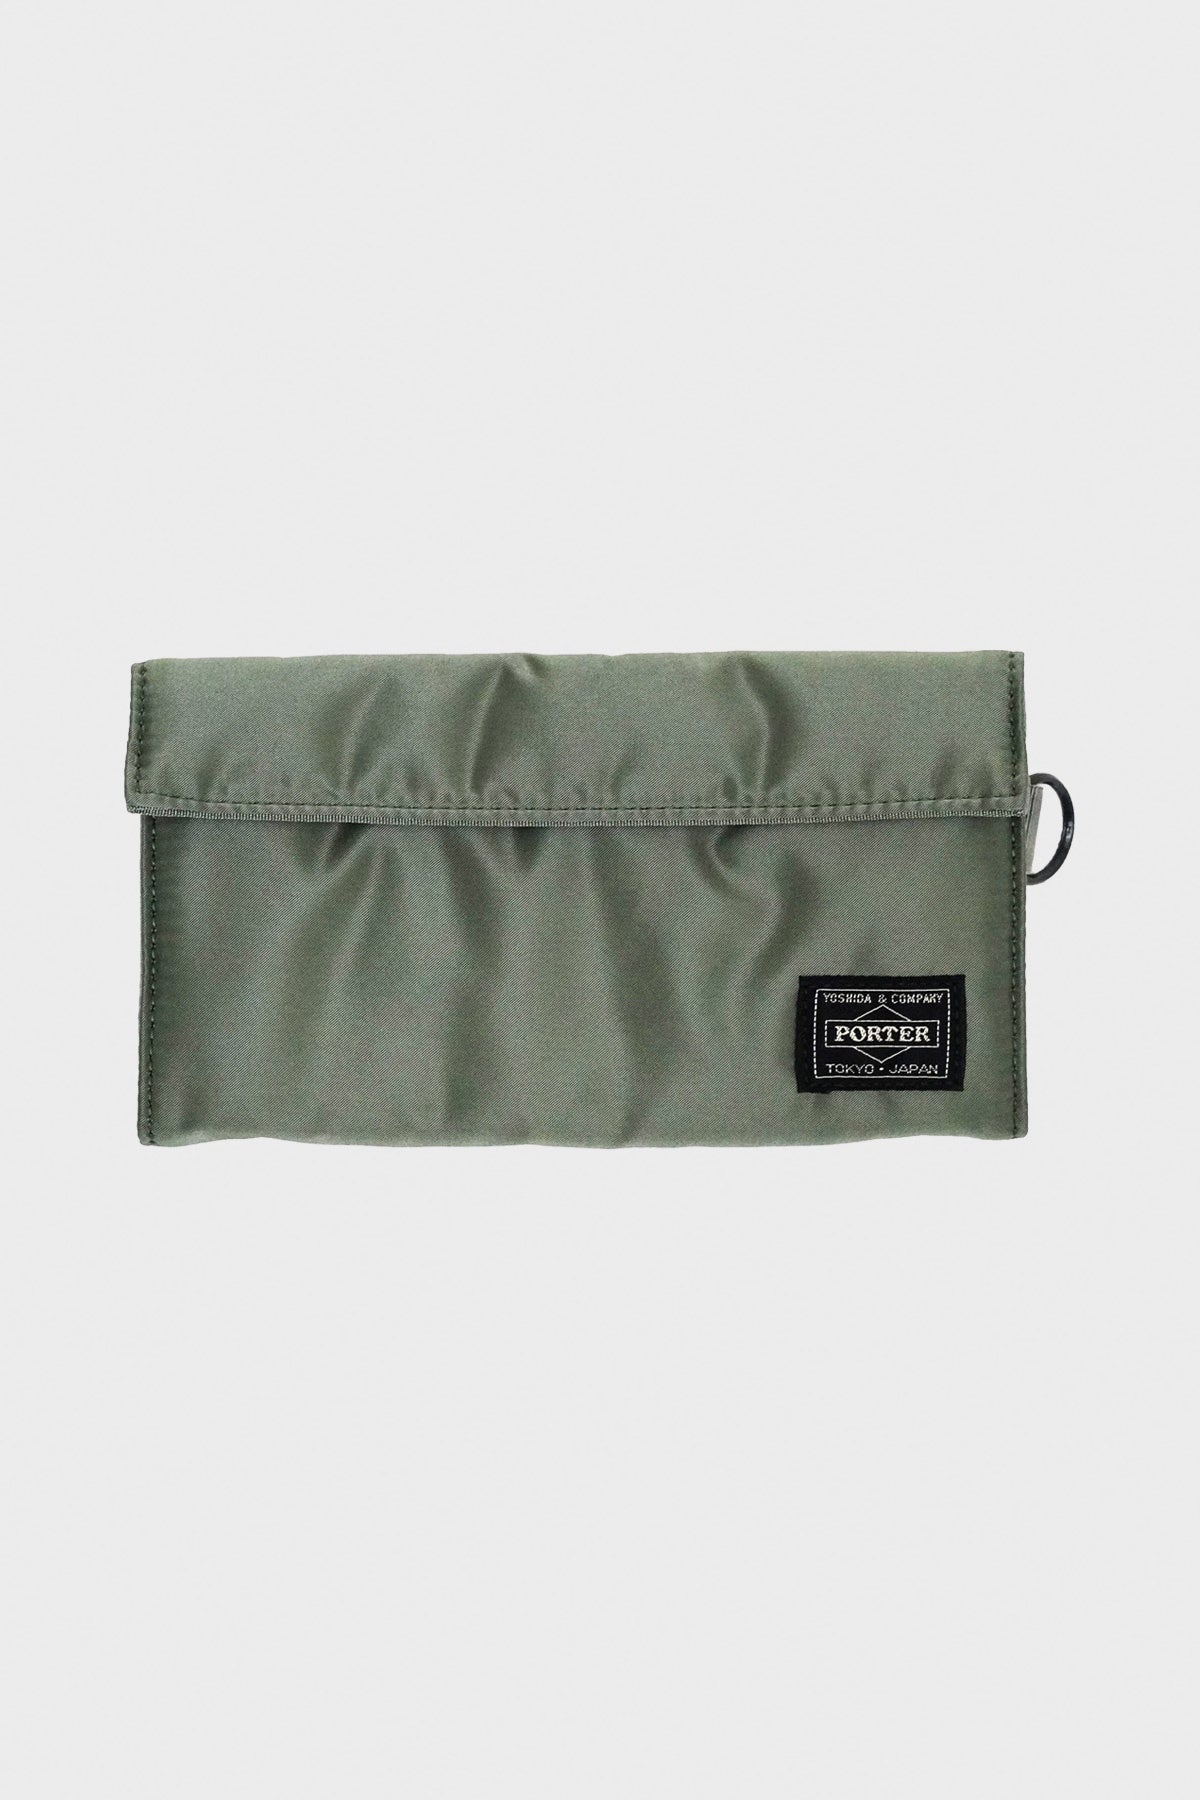 Porter Yoshida and Co - Wallet - Sage Green - Canoe Club